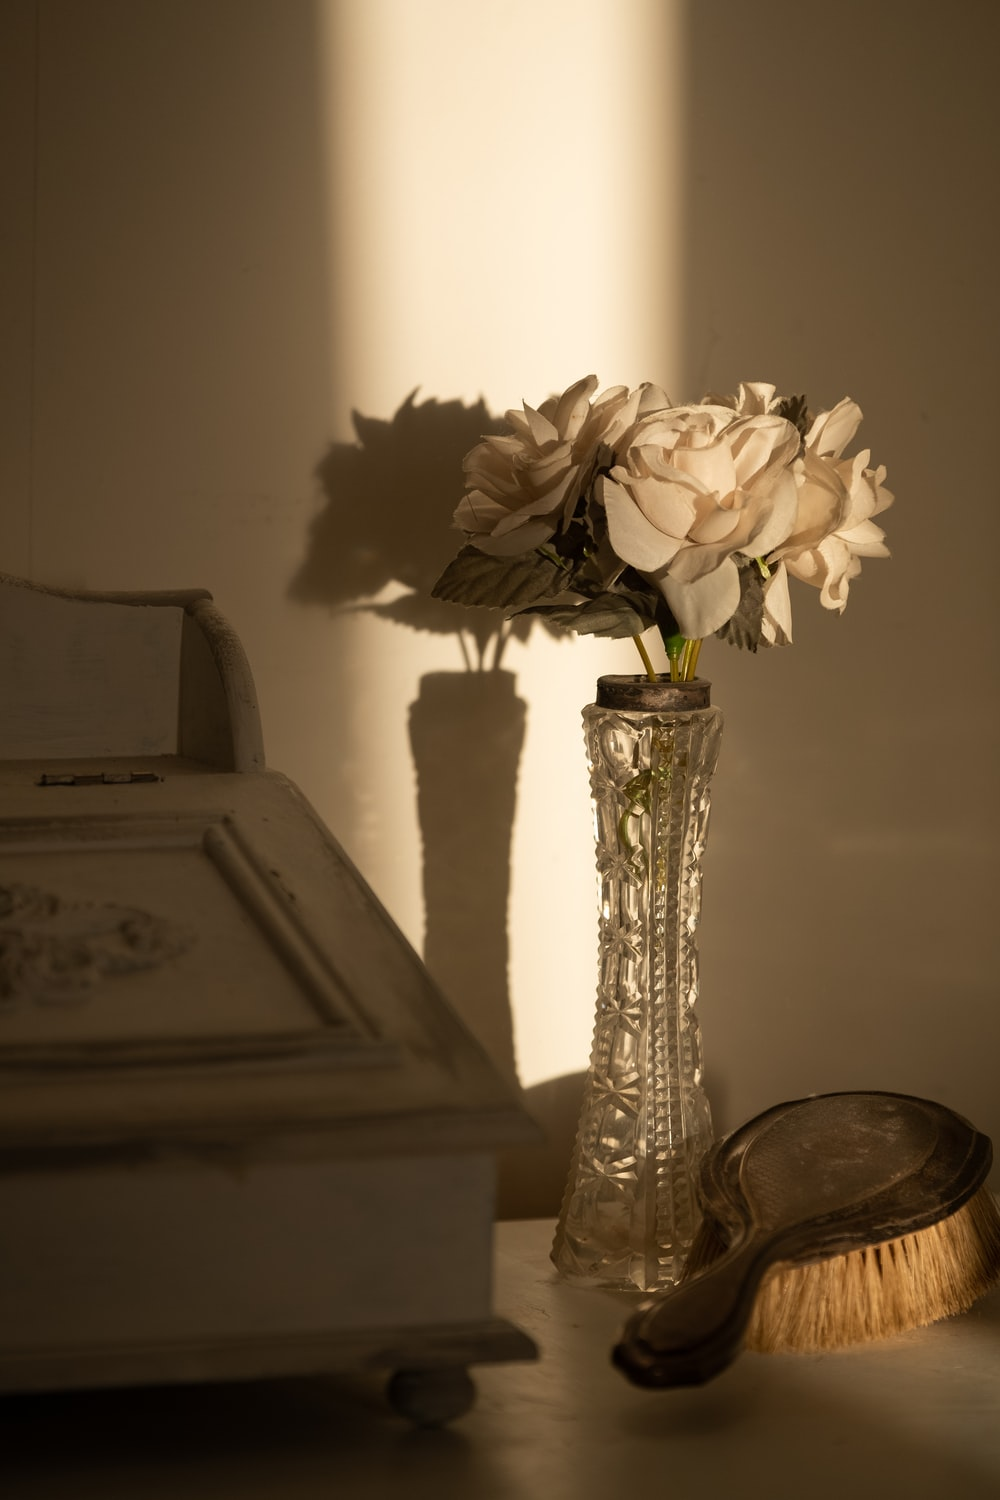 white flower in clear glass vase on brown wooden table